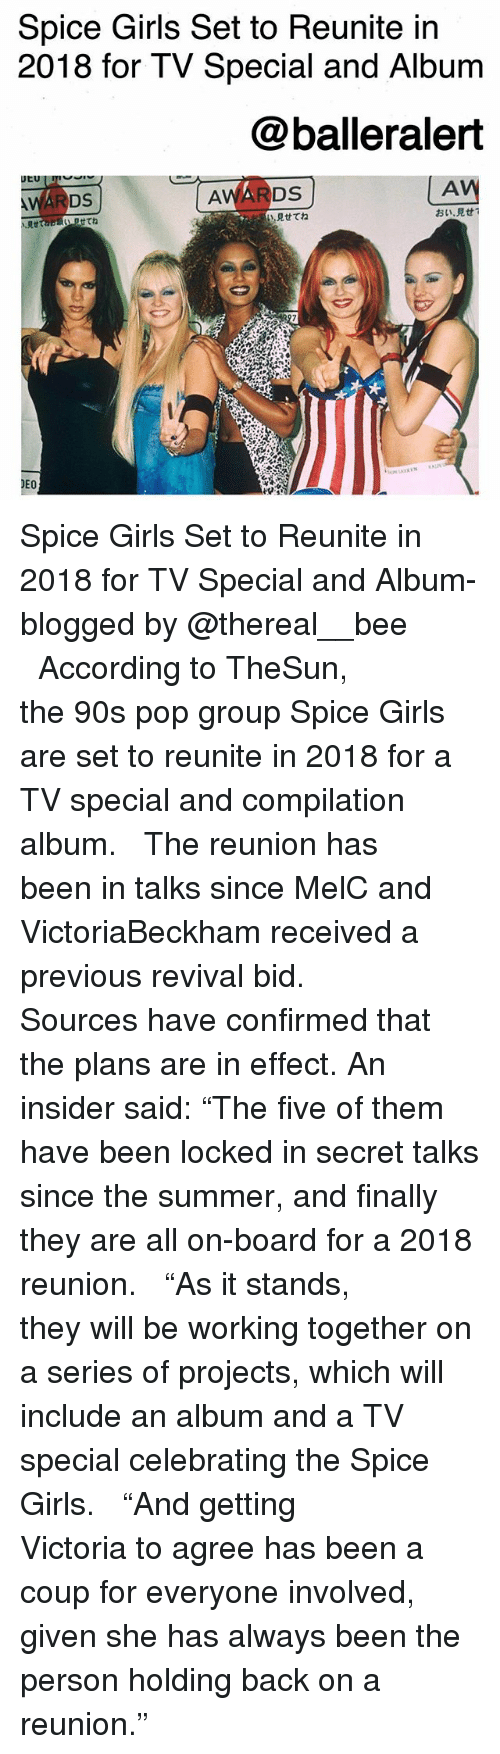 "Revival: Spice Girls Set to Reunite in  2018 for TV Special and Album  @balleralert  AV  見せてね  おい·見せ!  Rtta  せてね  DEO Spice Girls Set to Reunite in 2018 for TV Special and Album-blogged by @thereal__bee ⠀⠀⠀⠀⠀⠀⠀⠀⠀ ⠀⠀ According to TheSun, the 90s pop group Spice Girls are set to reunite in 2018 for a TV special and compilation album. ⠀⠀⠀⠀⠀⠀⠀⠀⠀ ⠀⠀ The reunion has been in talks since MelC and VictoriaBeckham received a previous revival bid. ⠀⠀⠀⠀⠀⠀⠀⠀⠀ ⠀⠀ Sources have confirmed that the plans are in effect. An insider said: ""The five of them have been locked in secret talks since the summer, and finally they are all on-board for a 2018 reunion. ⠀⠀⠀⠀⠀⠀⠀⠀⠀ ⠀⠀ ""As it stands, they will be working together on a series of projects, which will include an album and a TV special celebrating the Spice Girls. ⠀⠀⠀⠀⠀⠀⠀⠀⠀ ⠀⠀ ""And getting Victoria to agree has been a coup for everyone involved, given she has always been the person holding back on a reunion."""